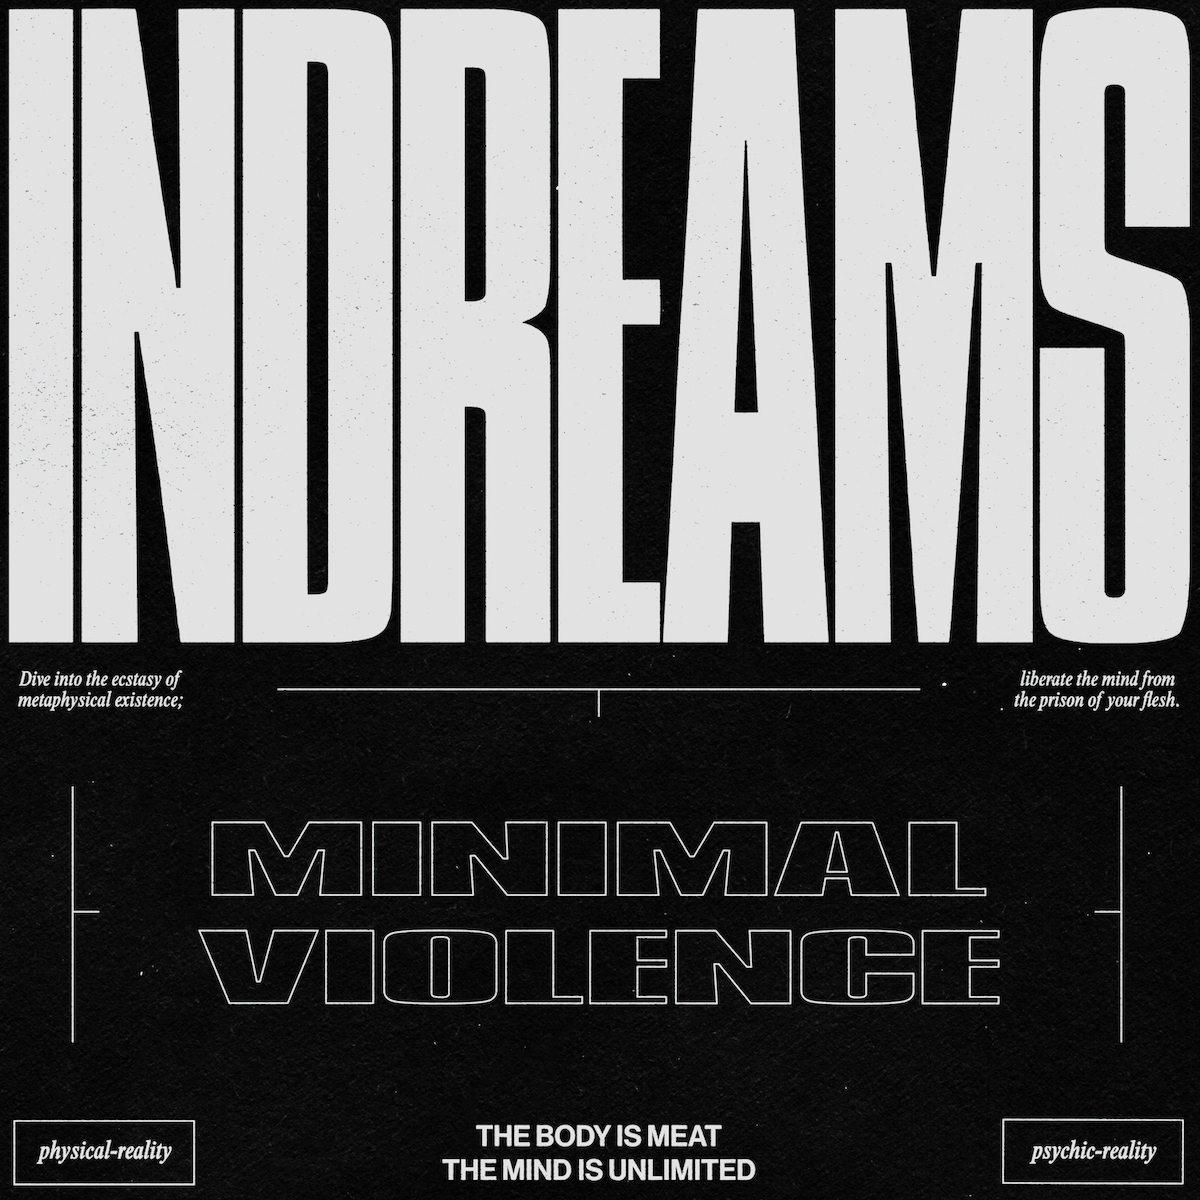 Minimal Violence - InDreams